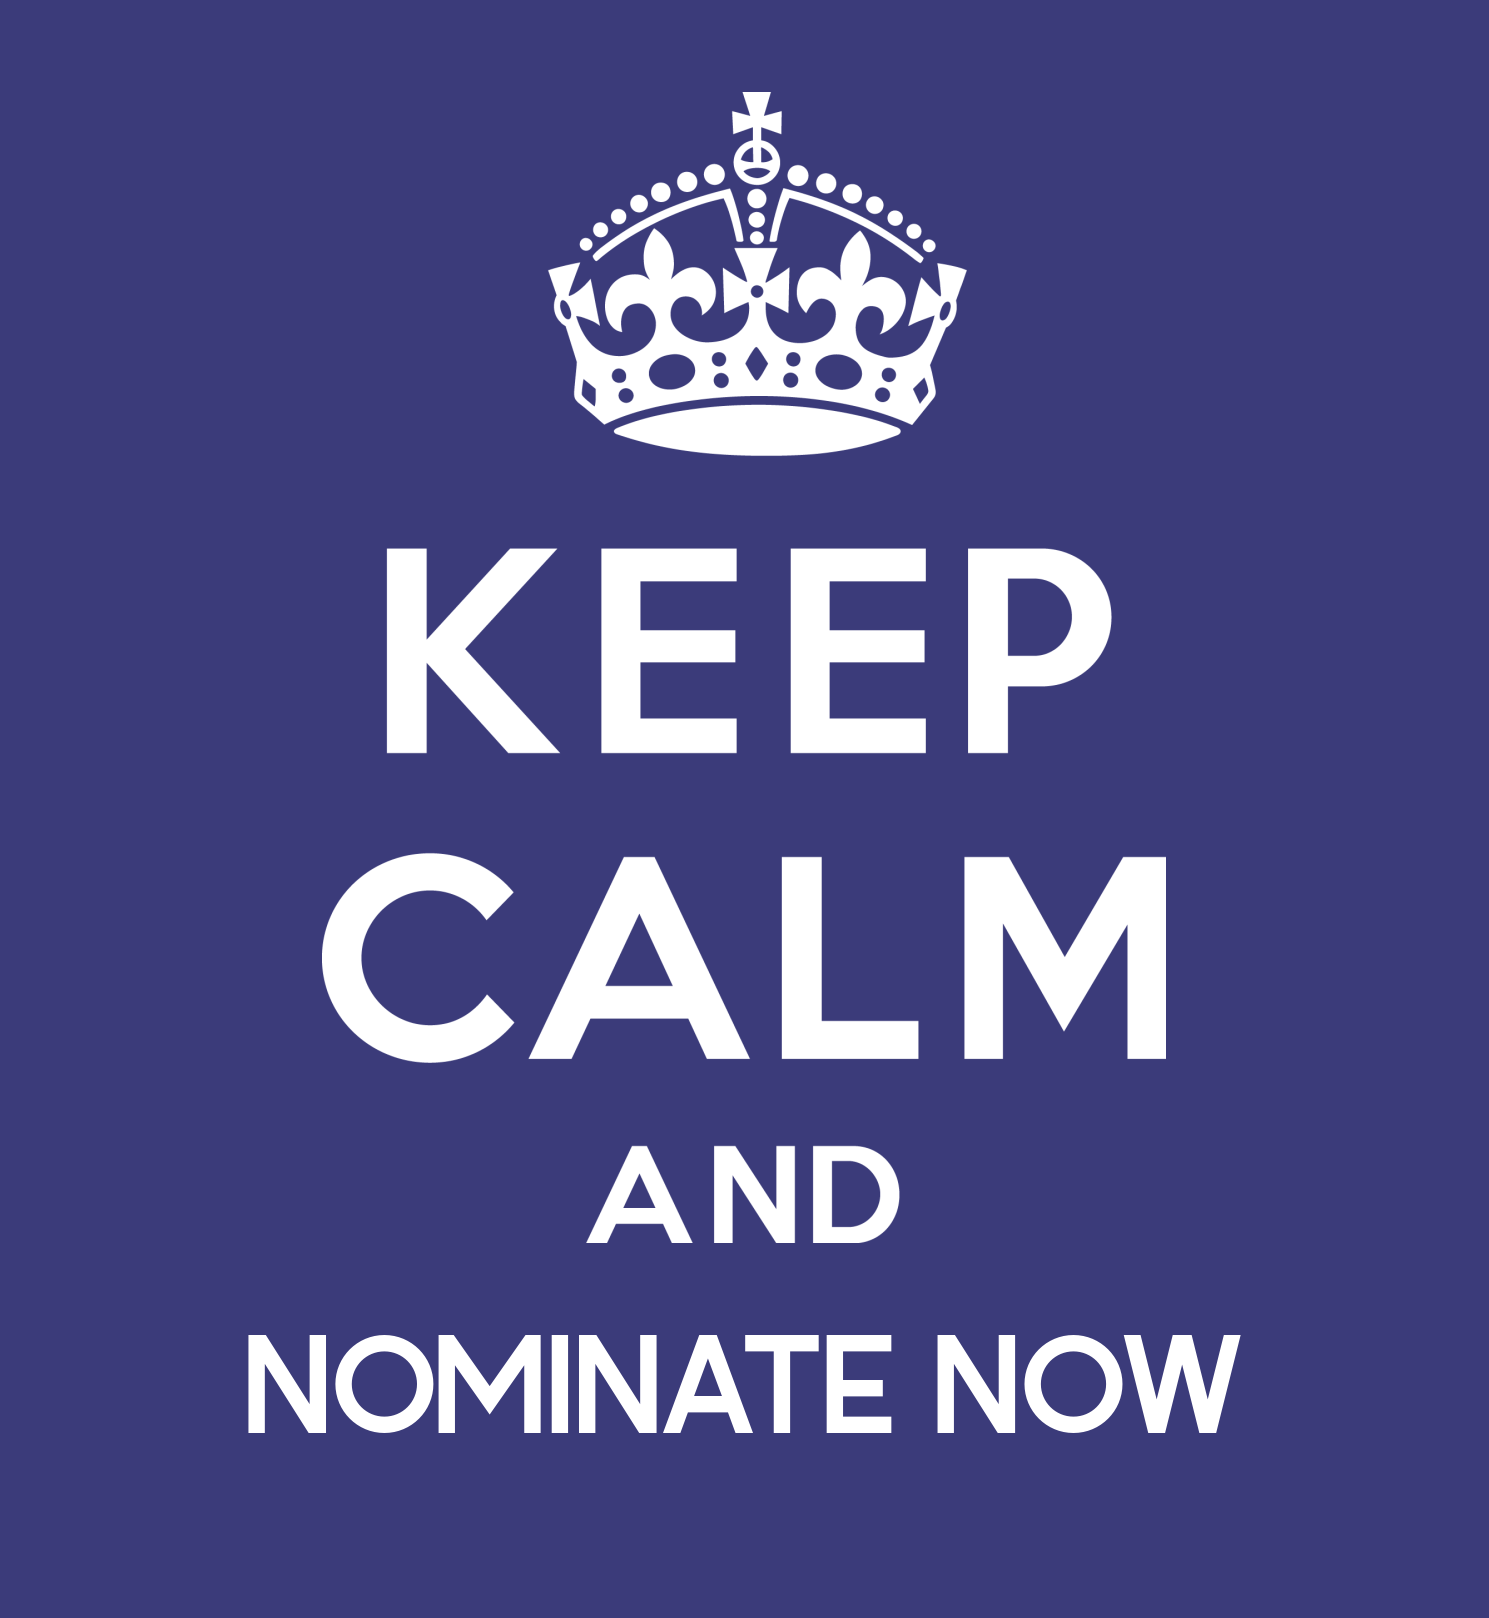 Nominations for Police Chaplaincy UK National Board Now Open